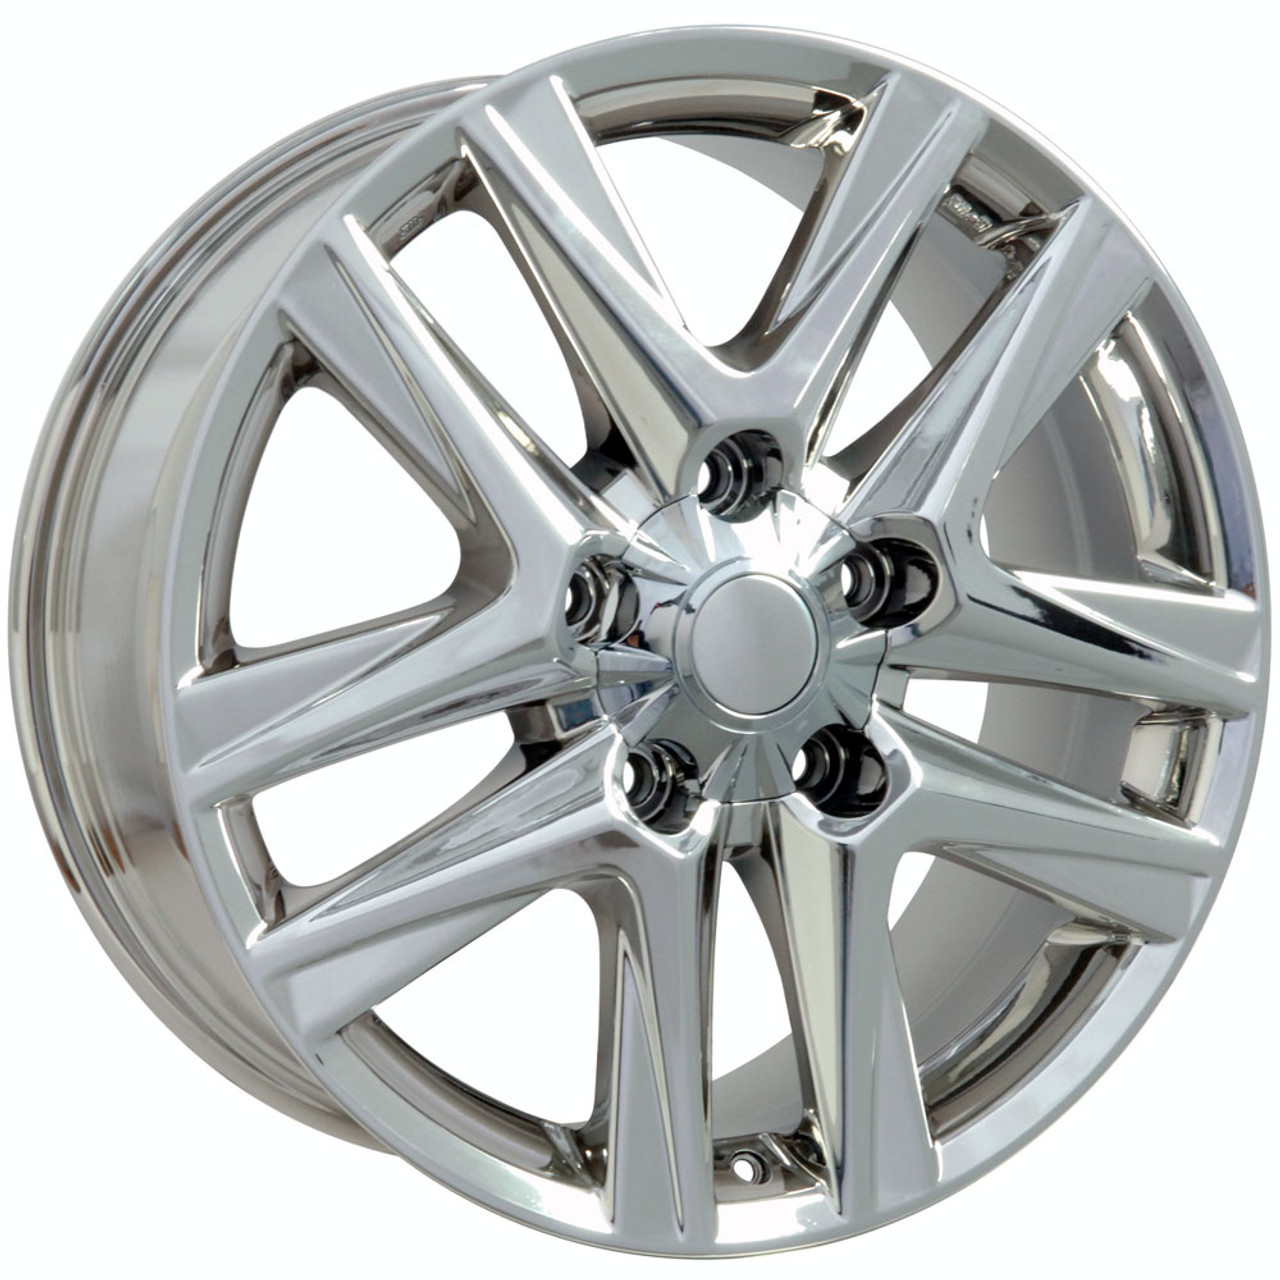 gives weather in reviews highlander any behind car confidence toyota wheels ca wheel